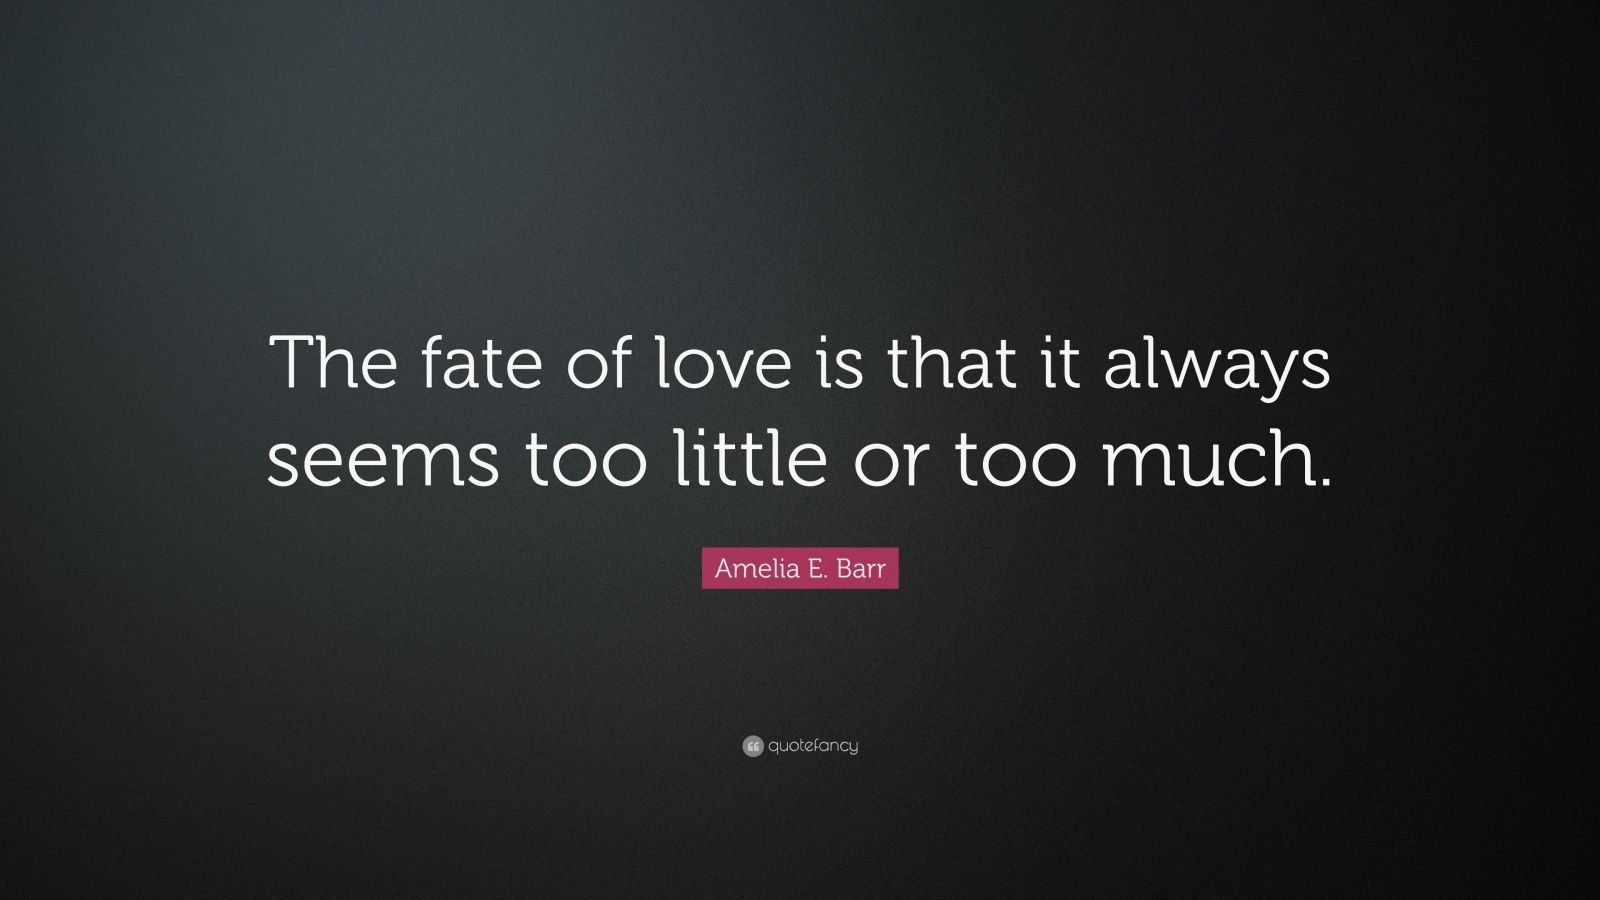 """Amelia E. Barr Quote: """"The fate of love is that it always seems too little or too much."""""""